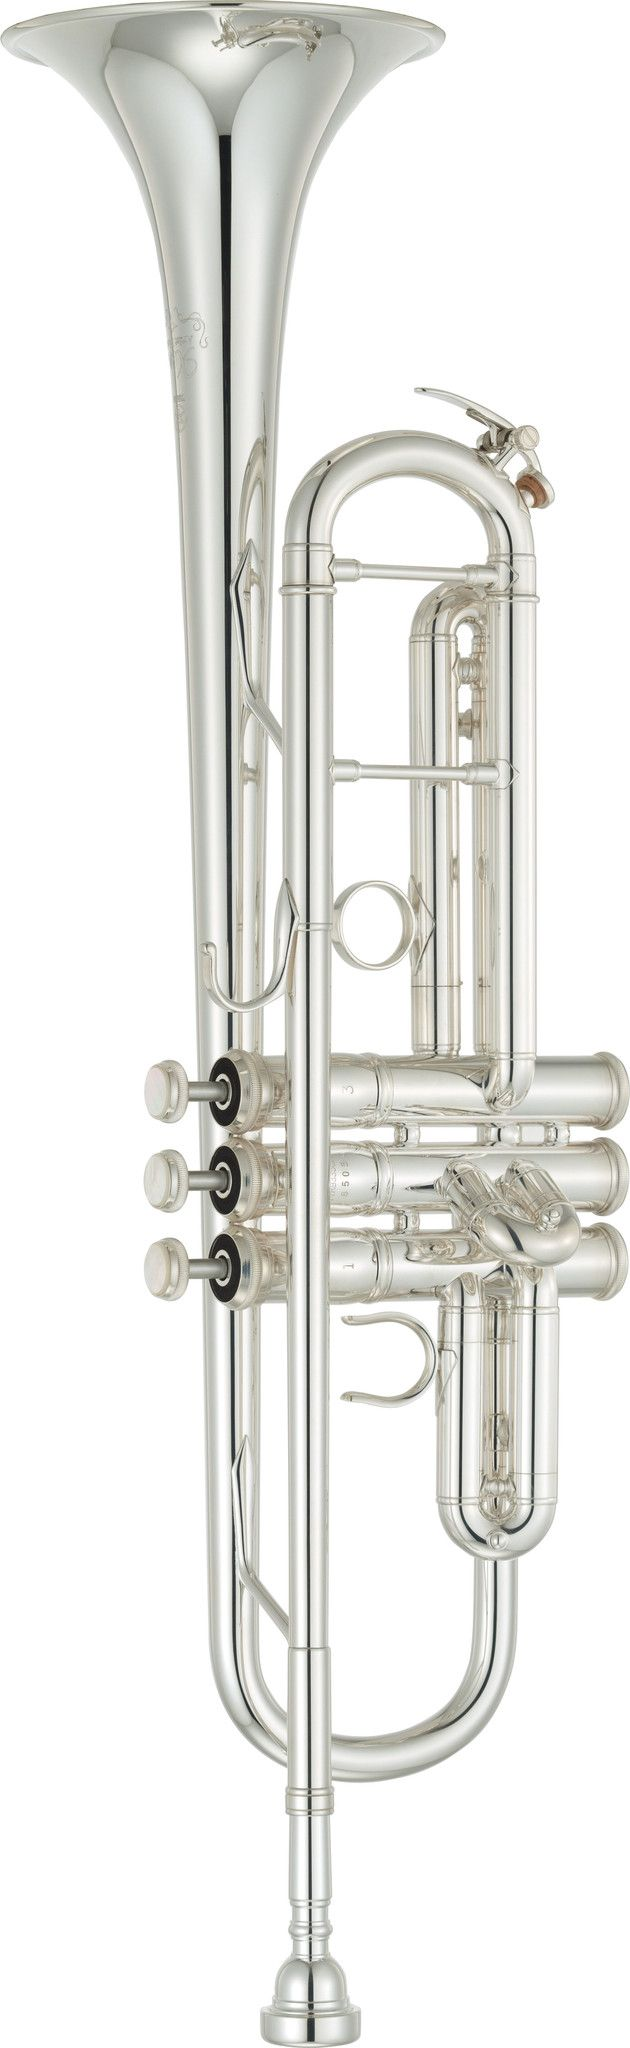 OH MY GOD THIS IS SO PRETTY I WOULD KILL FOR A SILVER TRUMPET BUT THEN I WOULD HAVE TO SAY GOOD-BYE TO TRUM-PETER